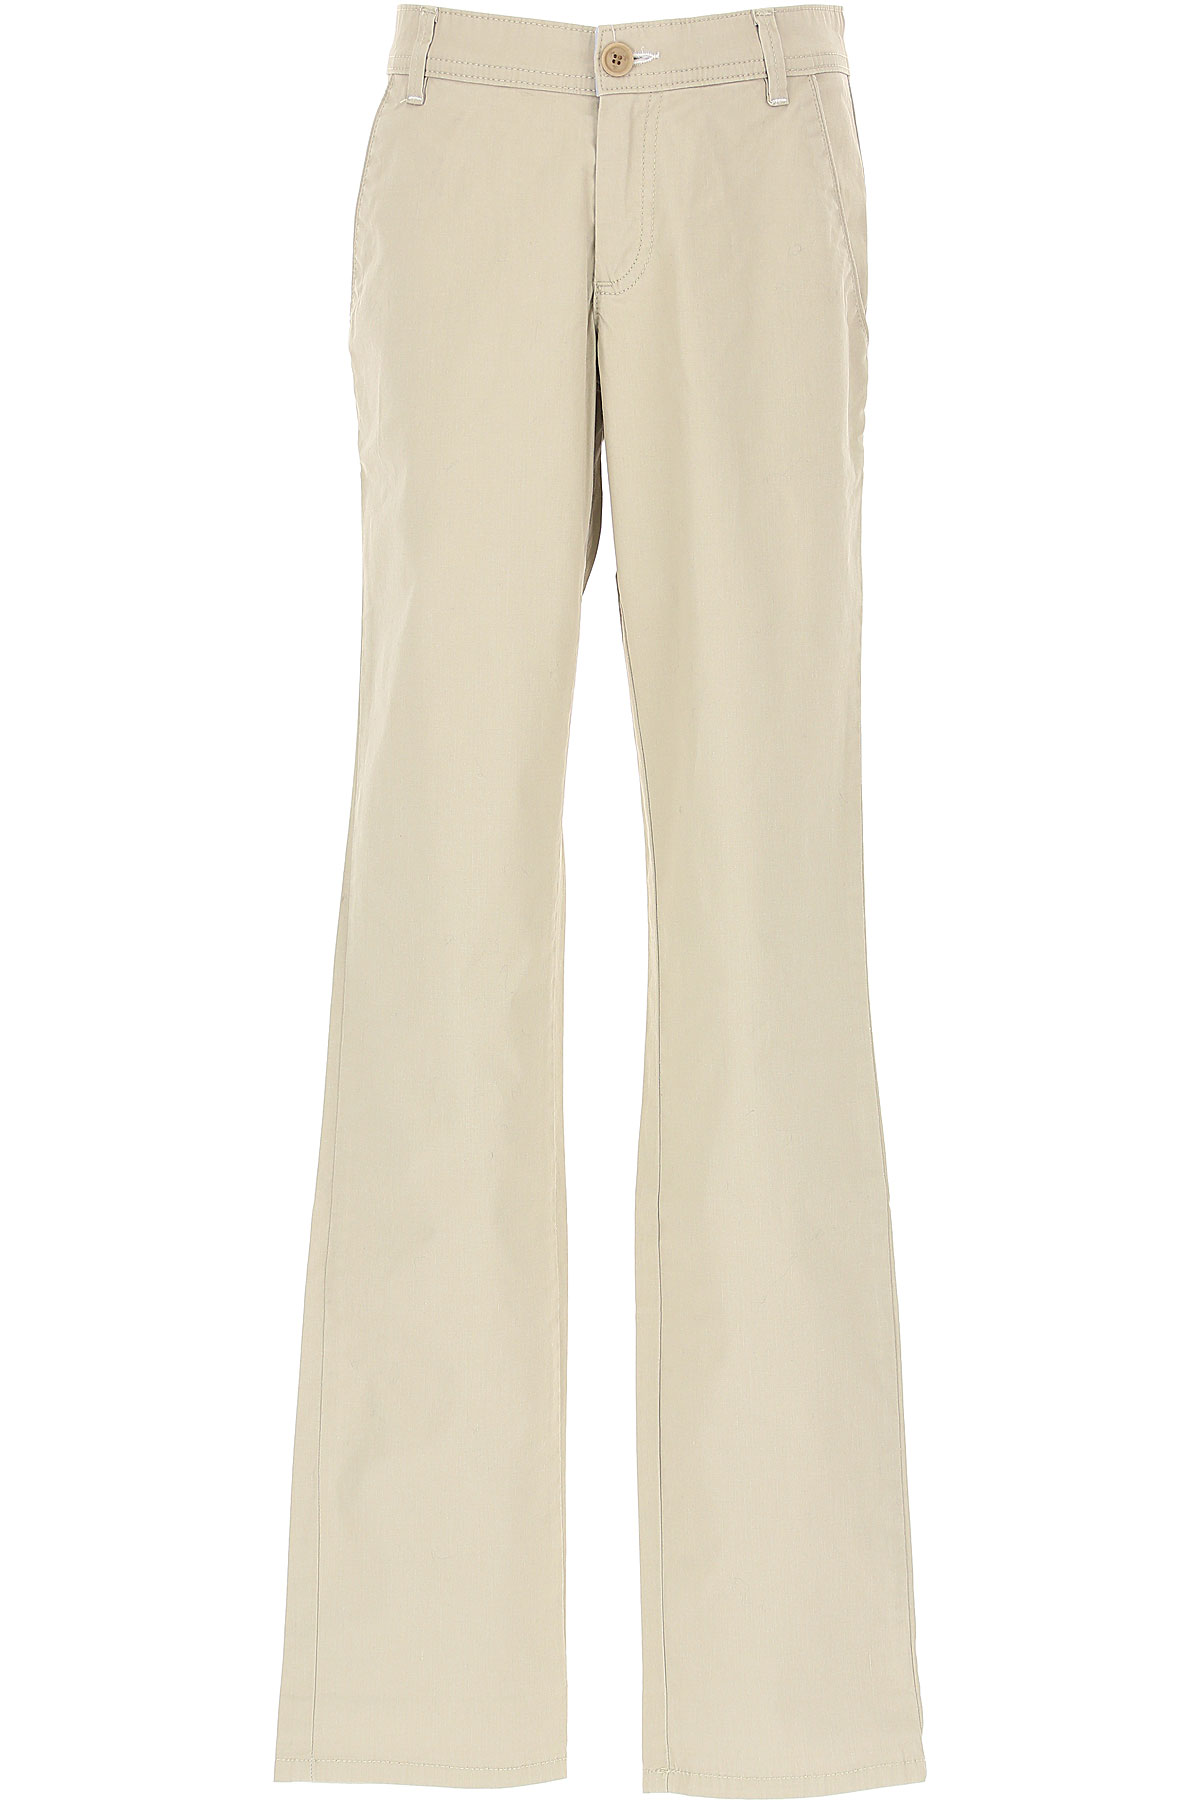 Fay Kids Pants for Boys On Sale in Outlet, Beige, Cotton, 2019, 12Y 13Y